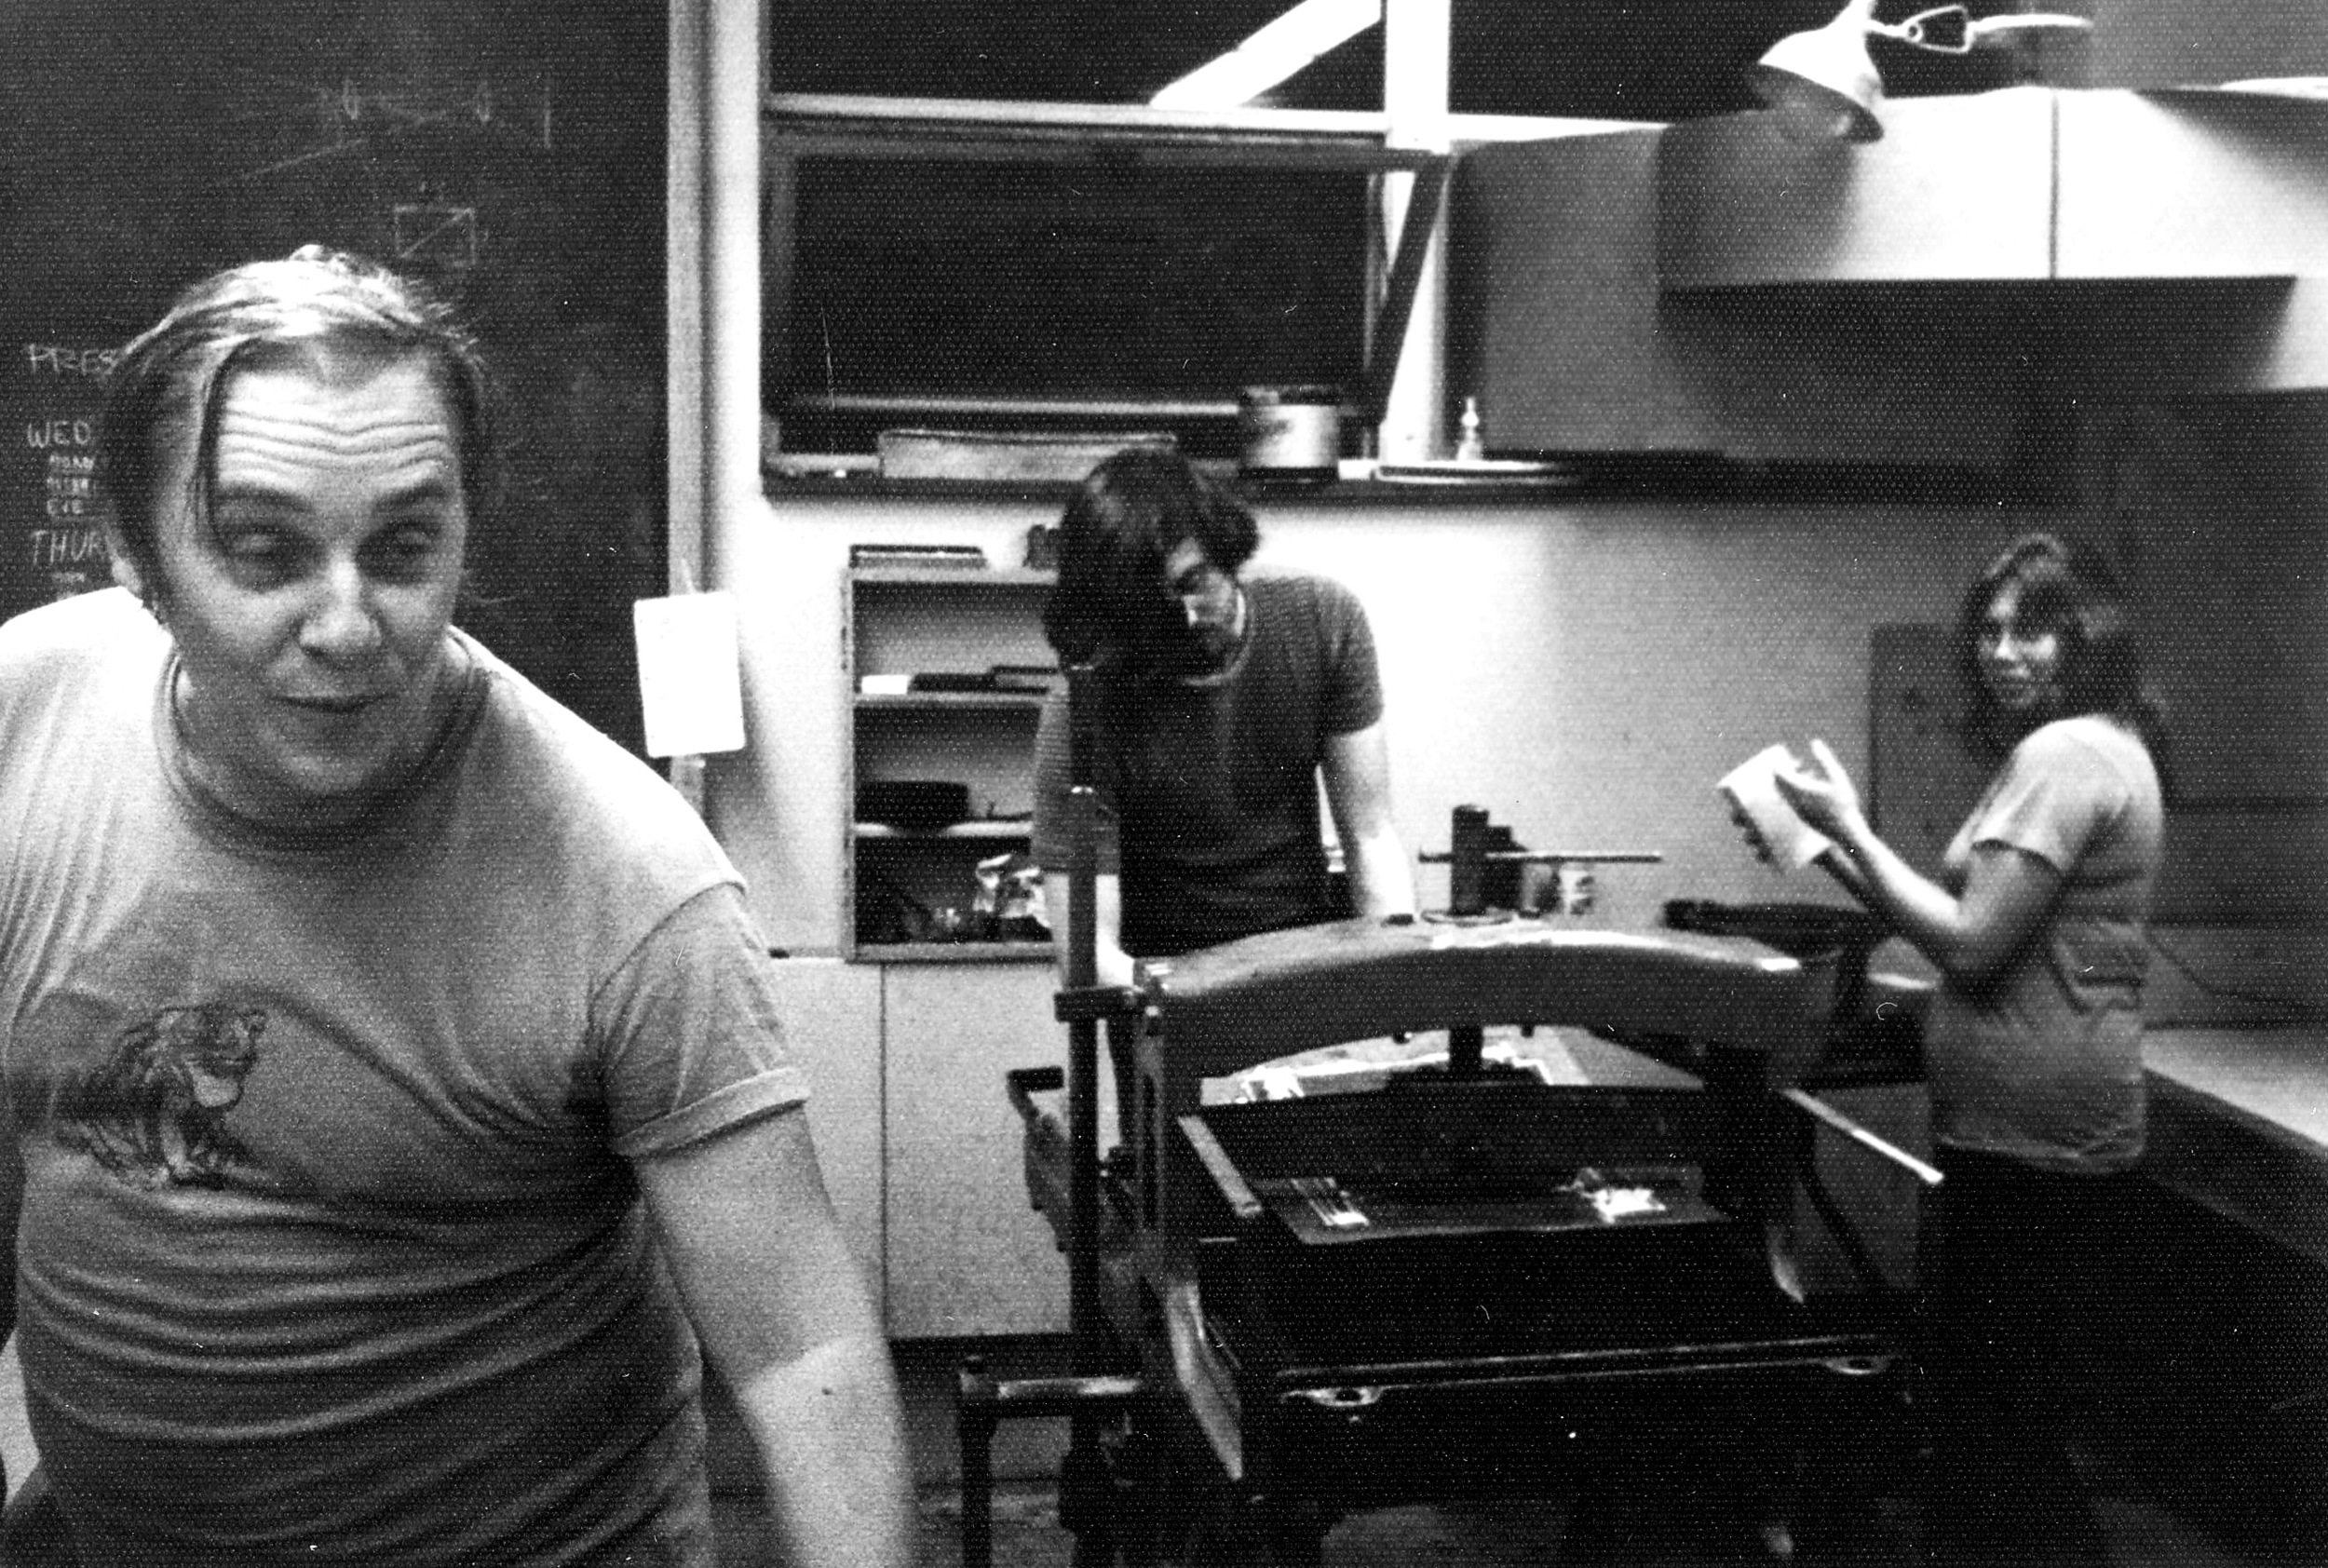 Jack examines prints, and Sondra assists printer Roger Bailey. It is  late July, 1973, in the print room at St. Lawrence University in Canton, New York.